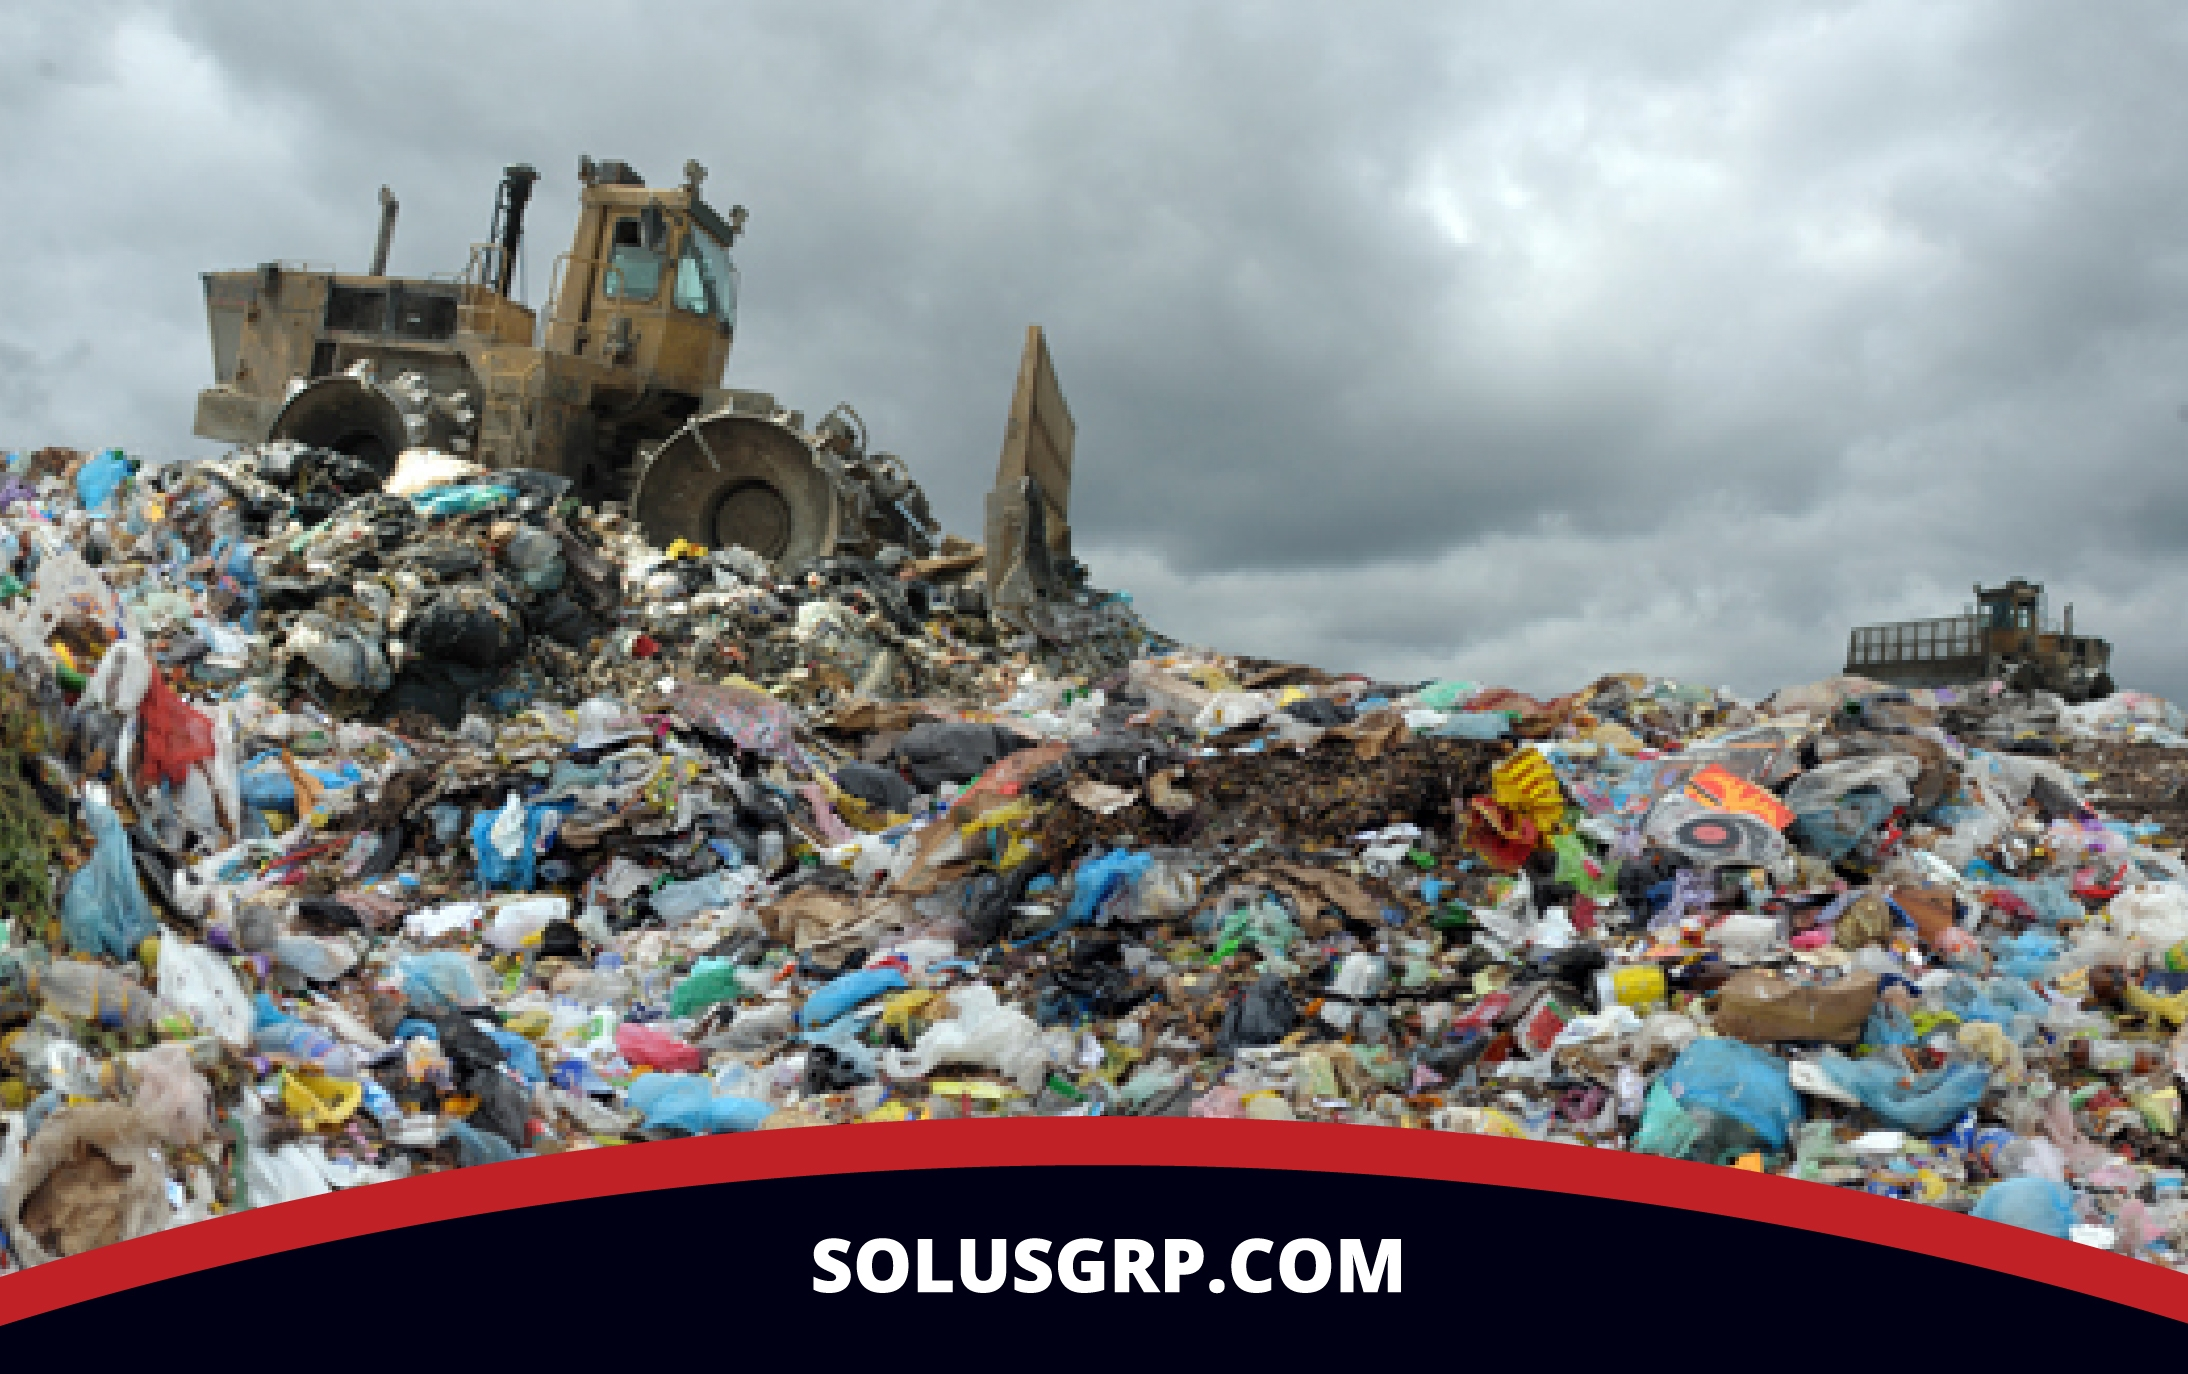 Recyclables in Landfills Contributes to Air Pollution - And What We Can Do About It